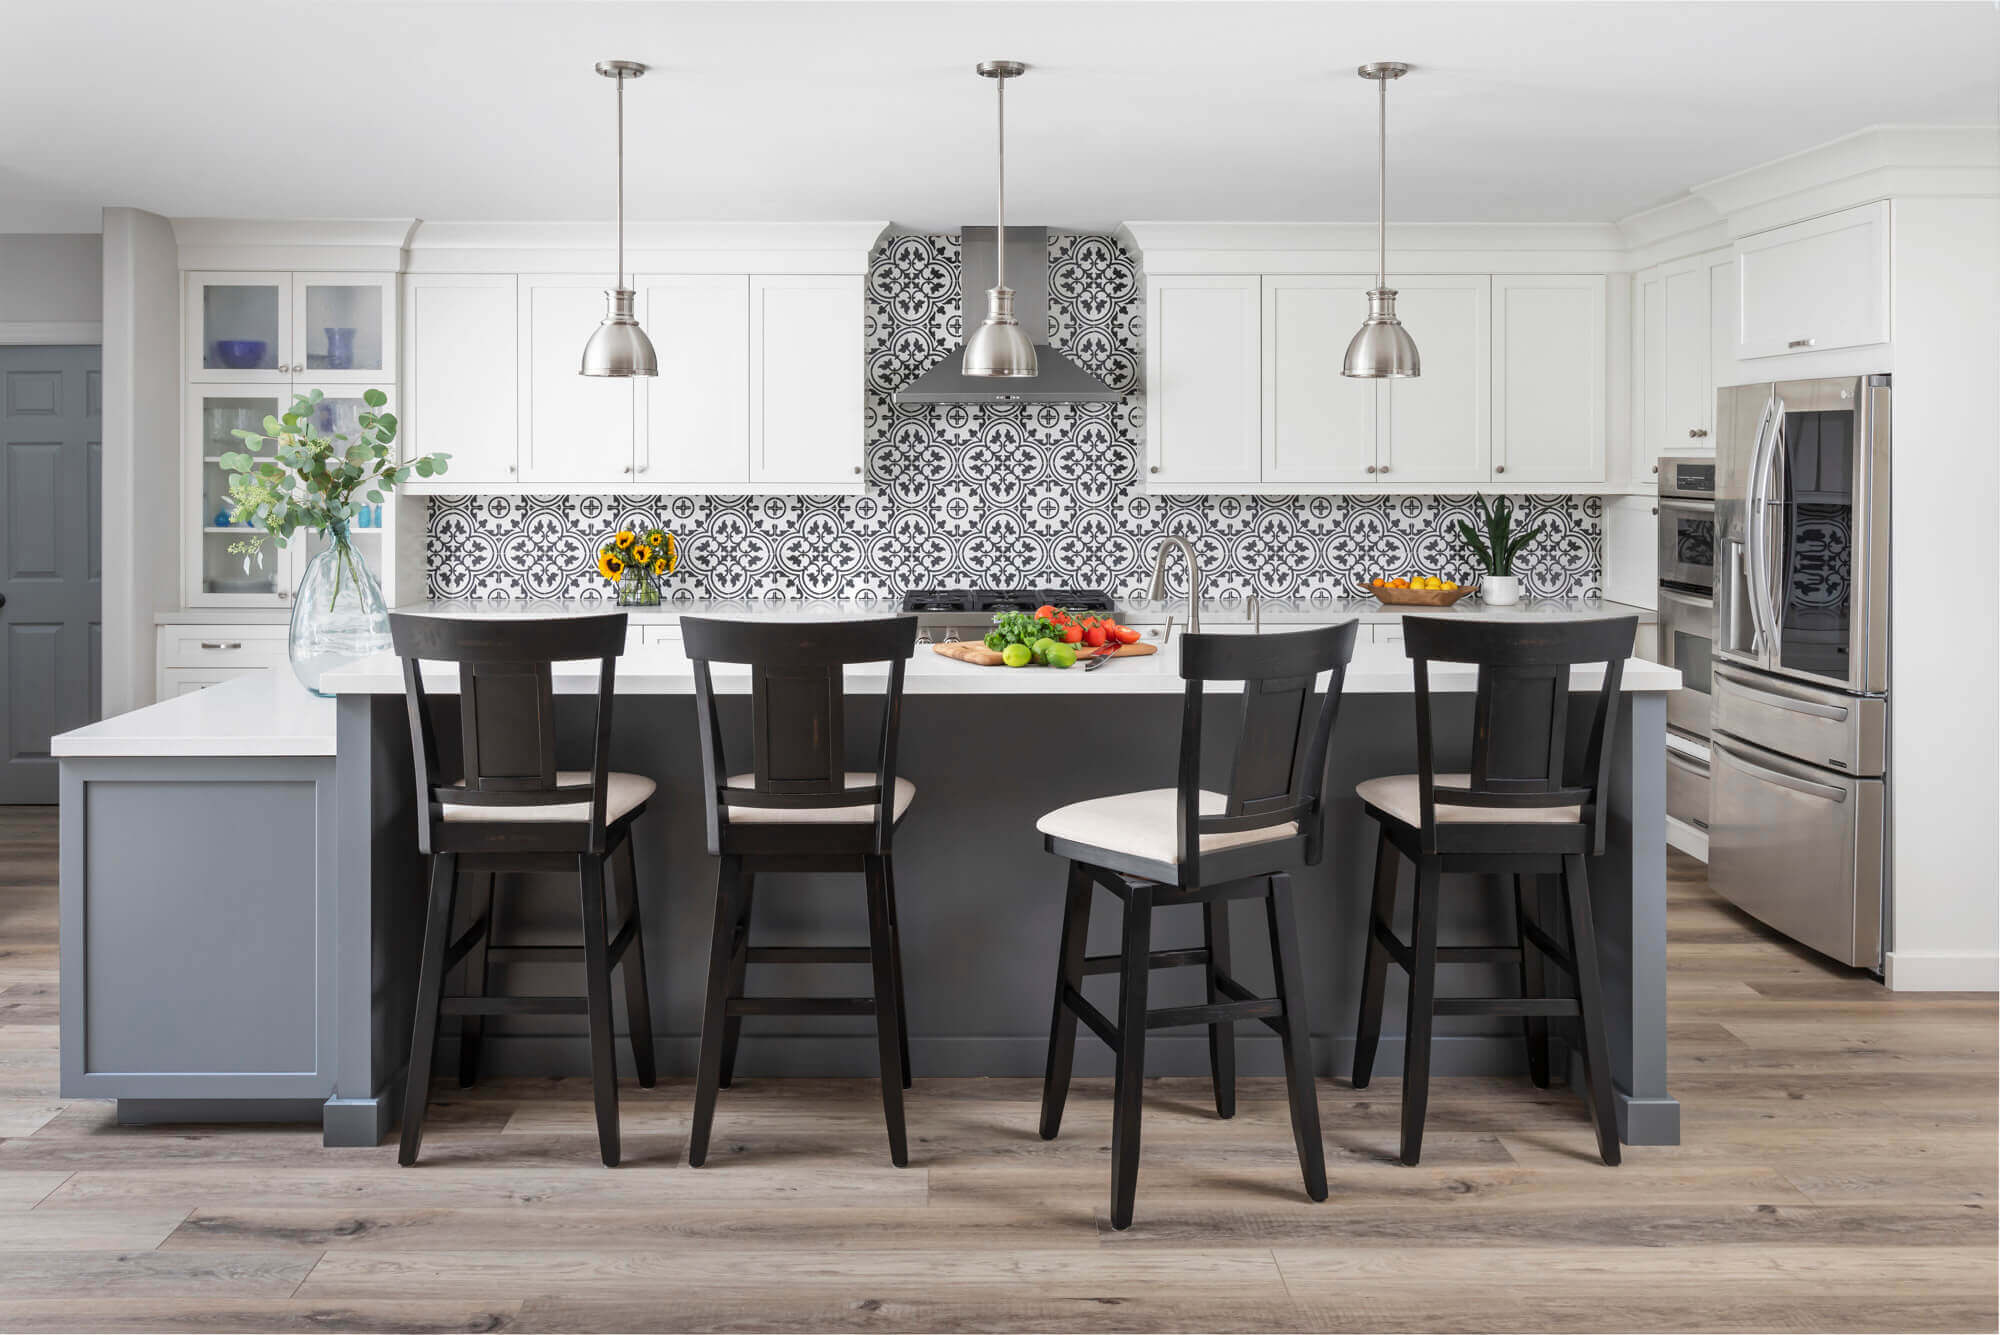 Kitchen room addition with timeless cabinetry